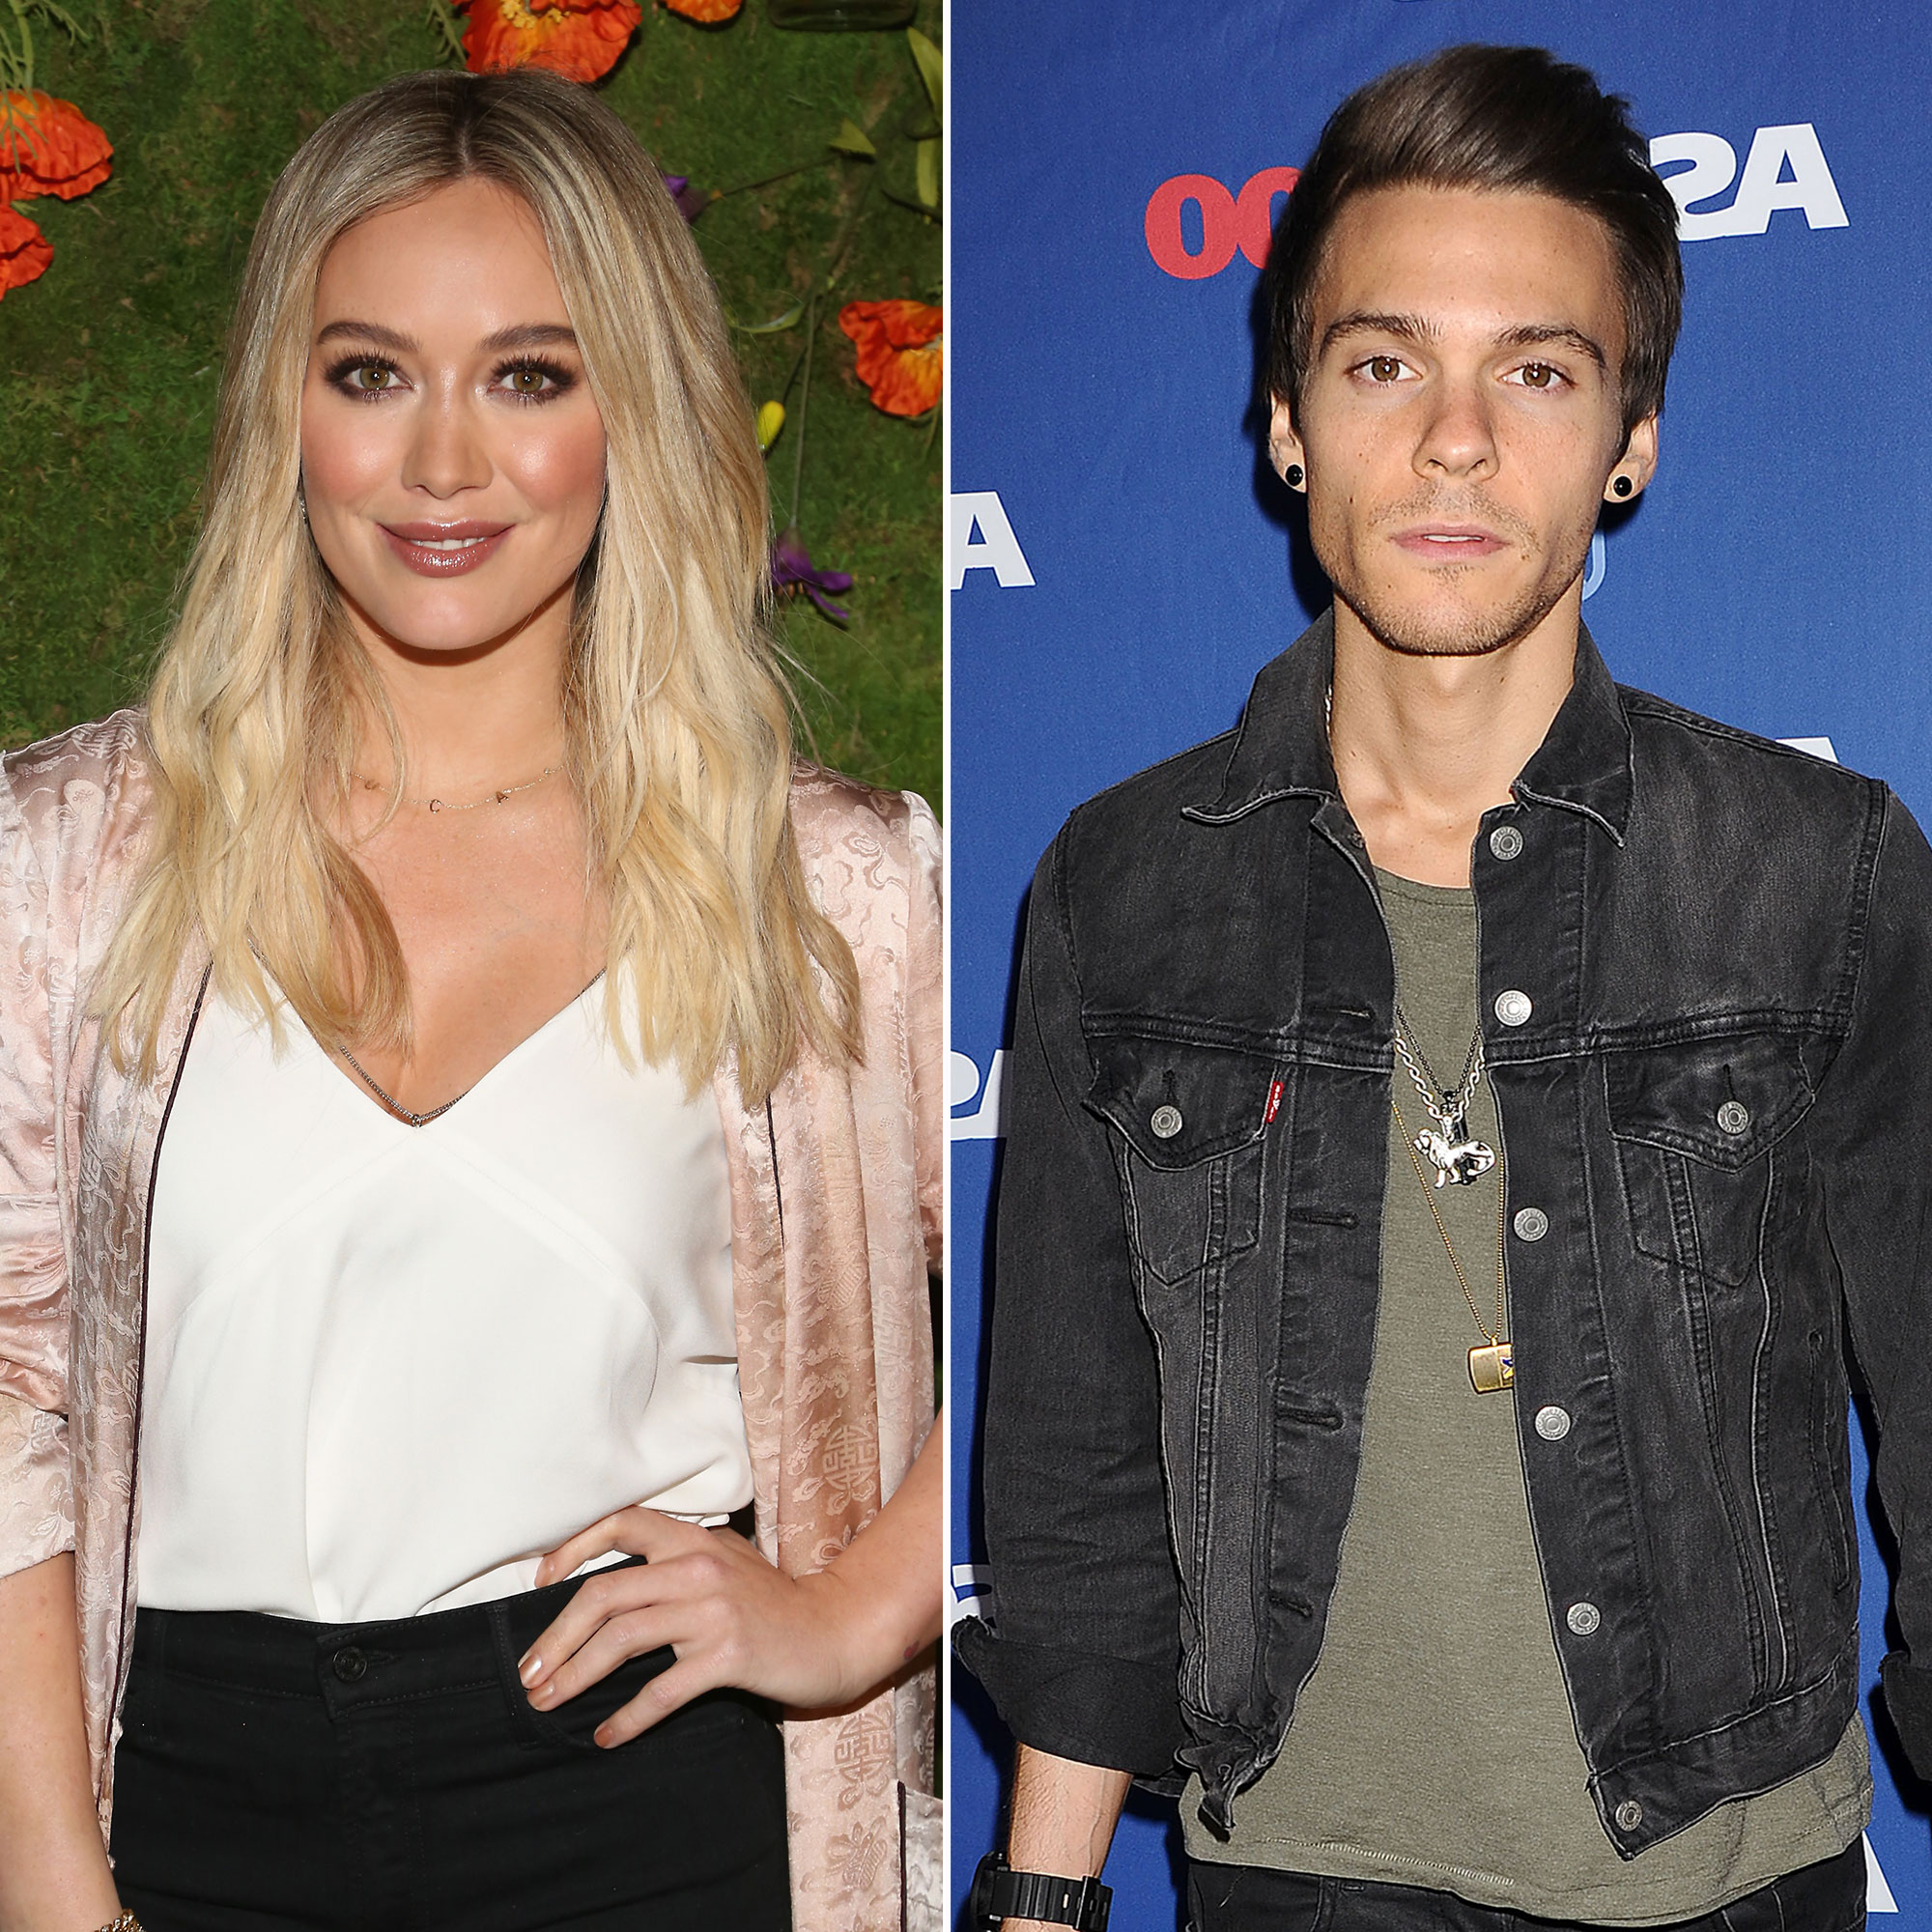 Hilary Duff Matthew Koma - The pair hit it off in 2015 — one year after Duff split from ex-husband Mike Comrie , with whom she shares son Luca — while collaborating on the Lizzie McGuire alum's album Breathe In. Breathe Out.